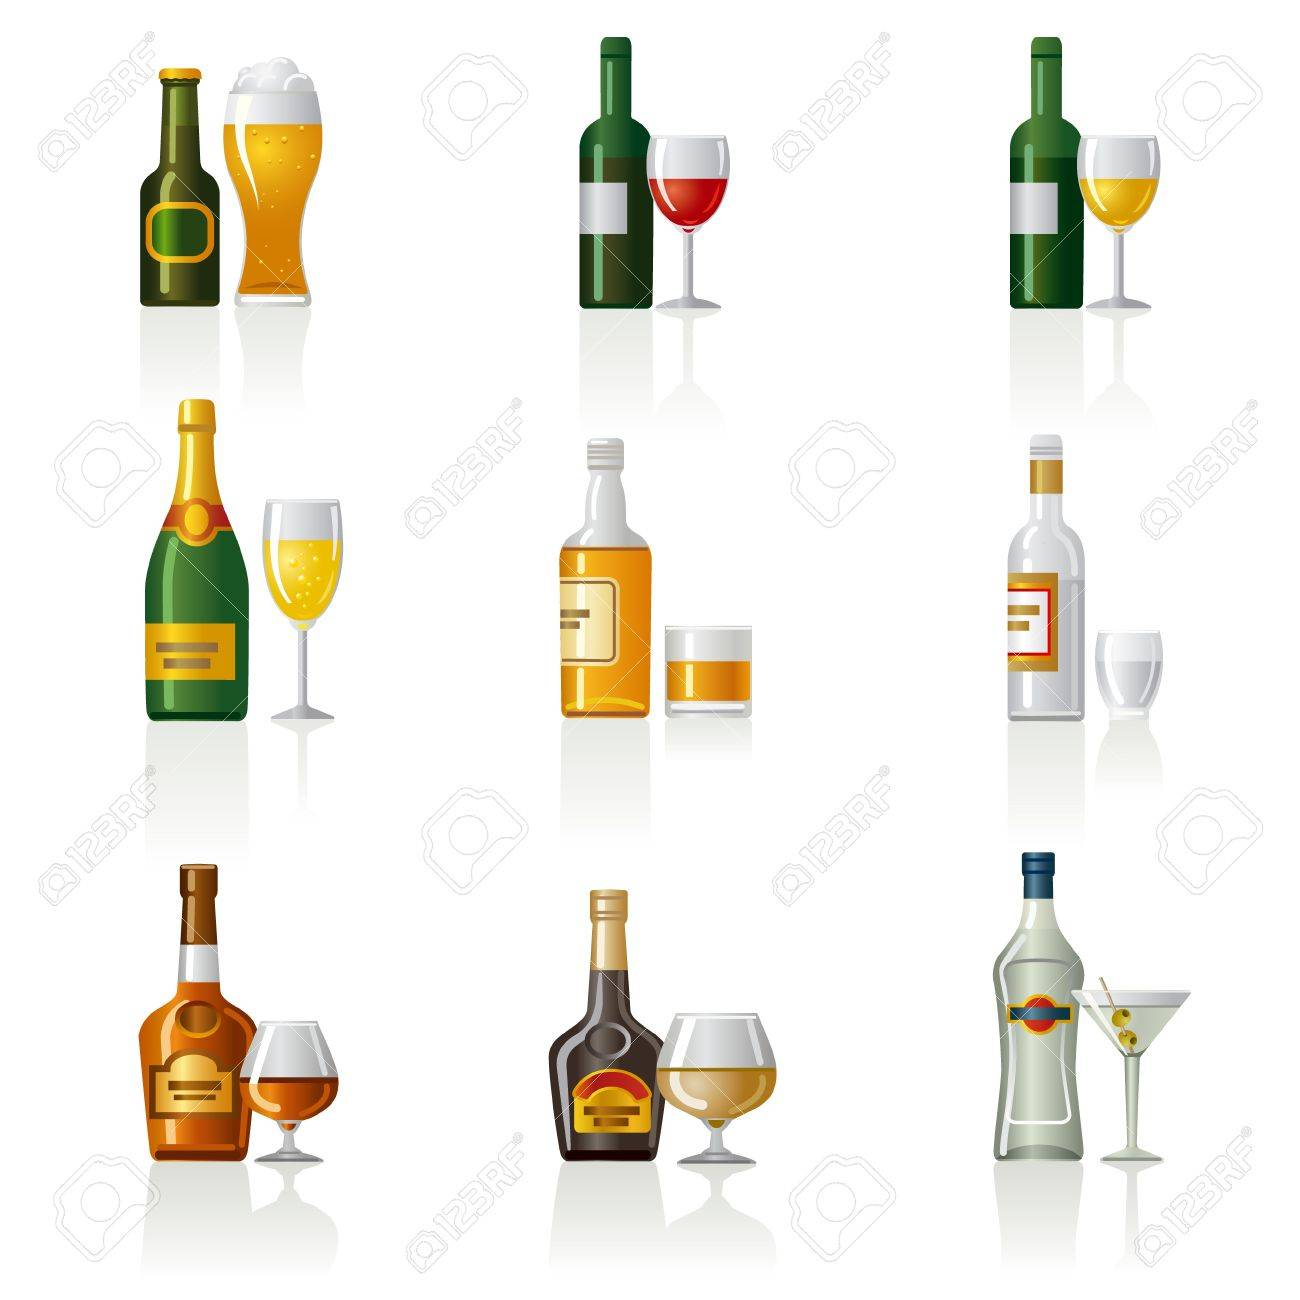 alcohol drinks icon set Stock Vector - 19481457